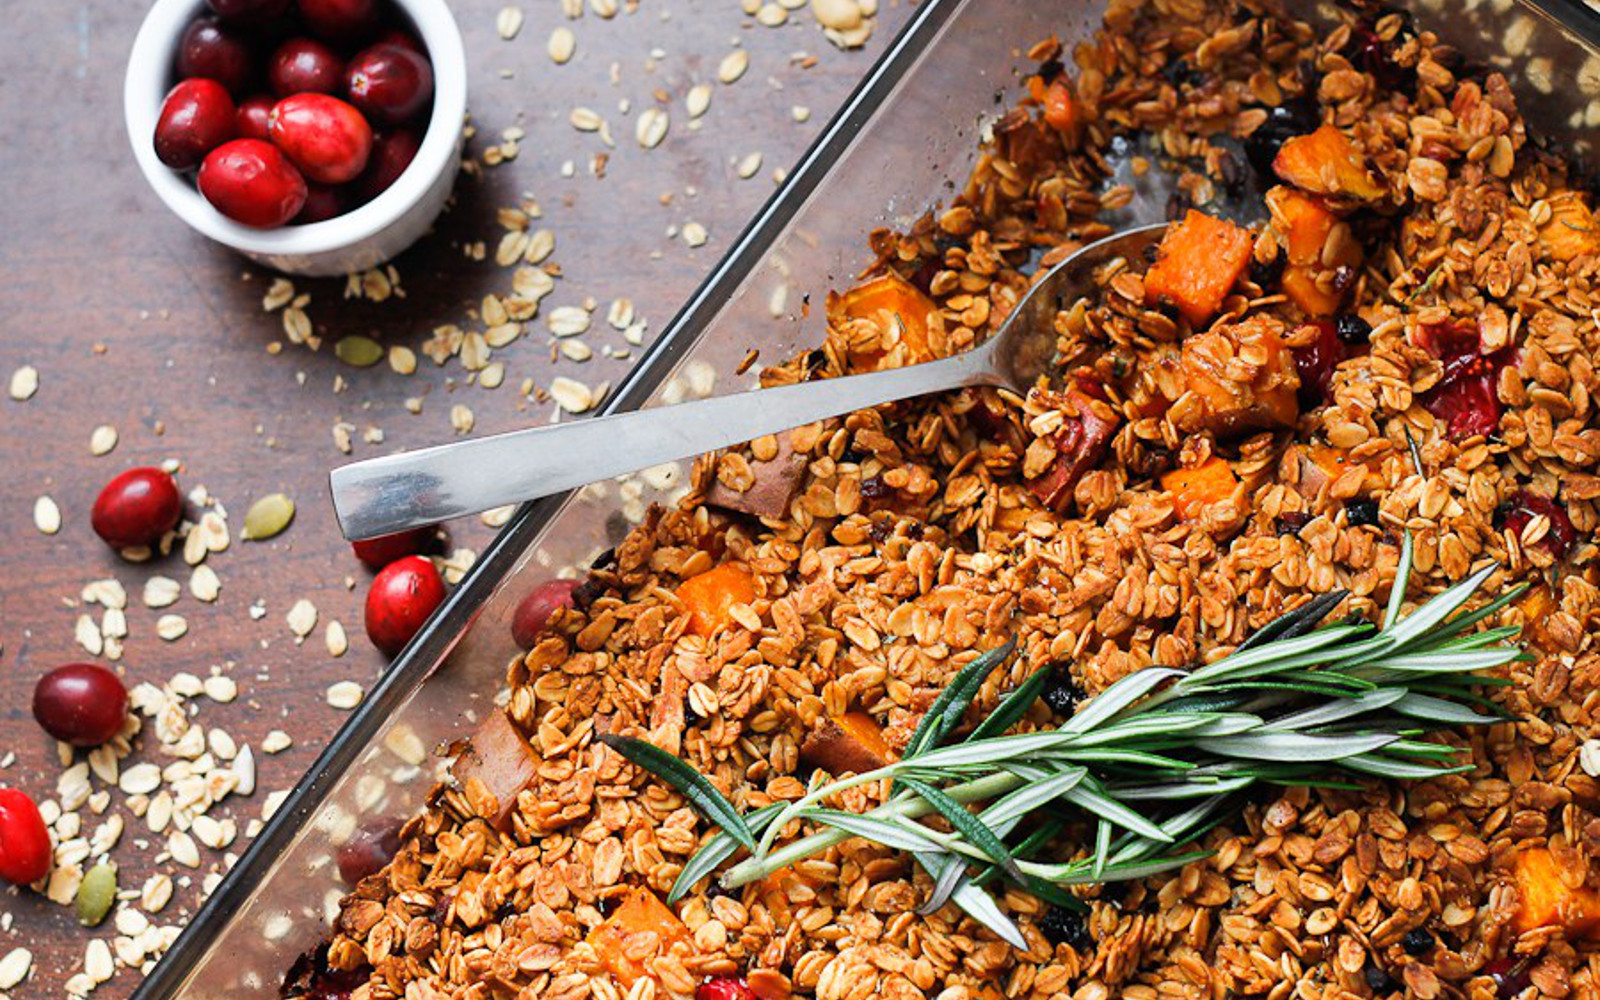 Sweet Potato Casserole With Crunchy Oat Topping 3.jpg